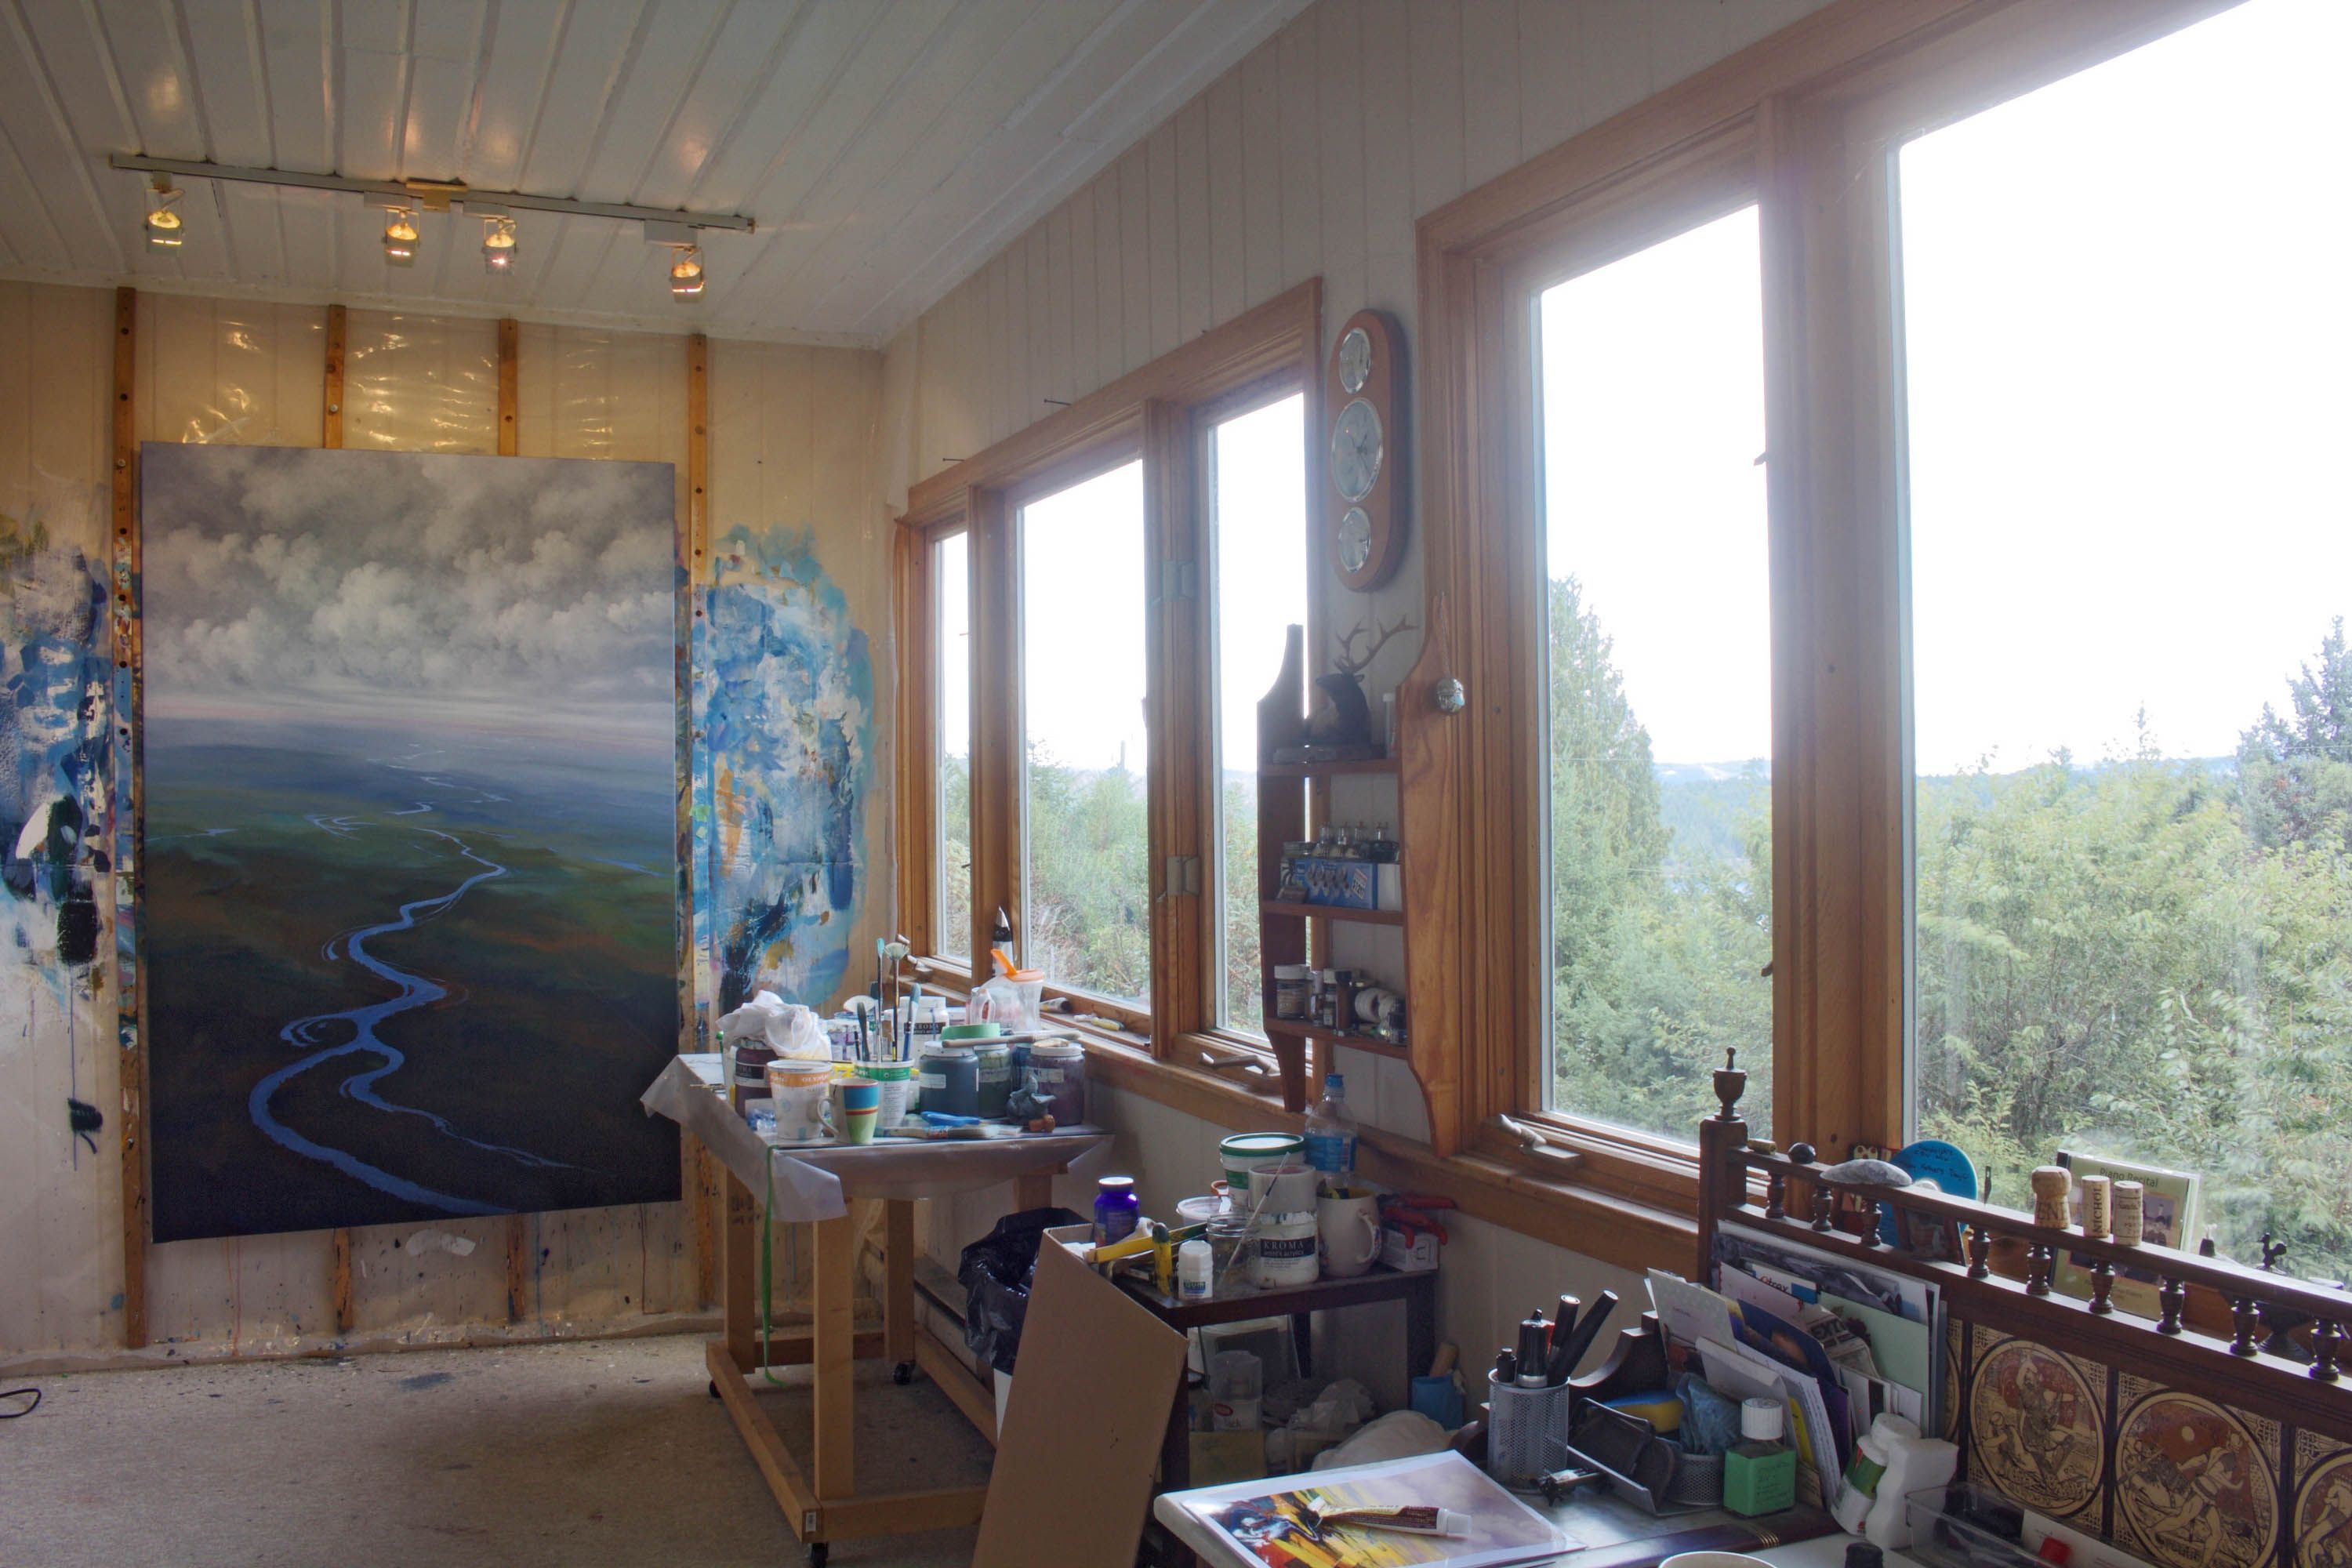 In the Salt Spring Island studio of Randolph Parker Salt